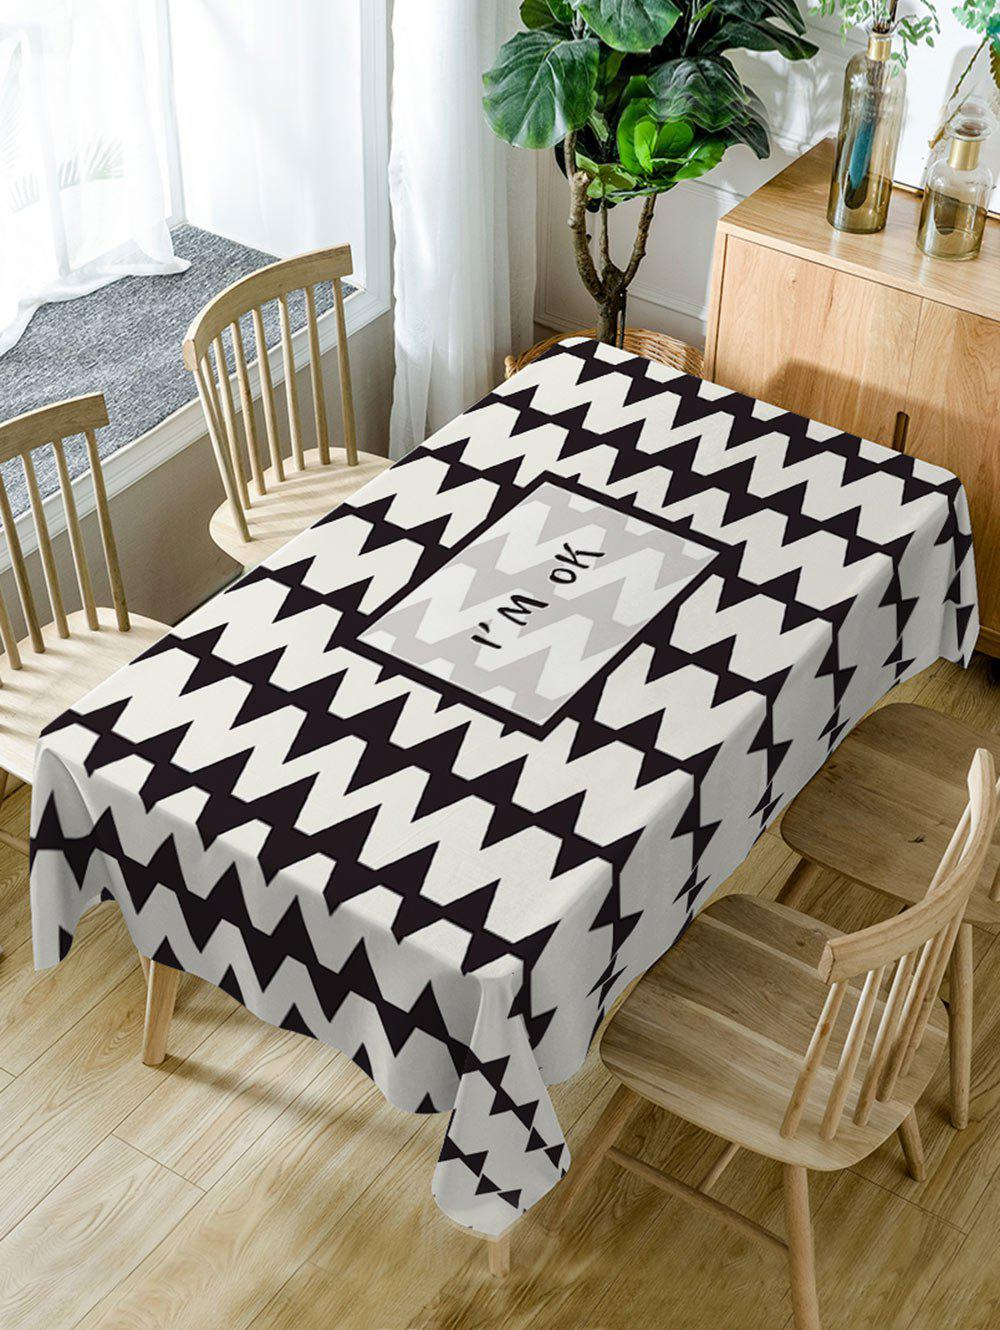 Zig Zag Print Waterproof Table Cloth - BLACK WHITE W54 INCH * L54 INCH